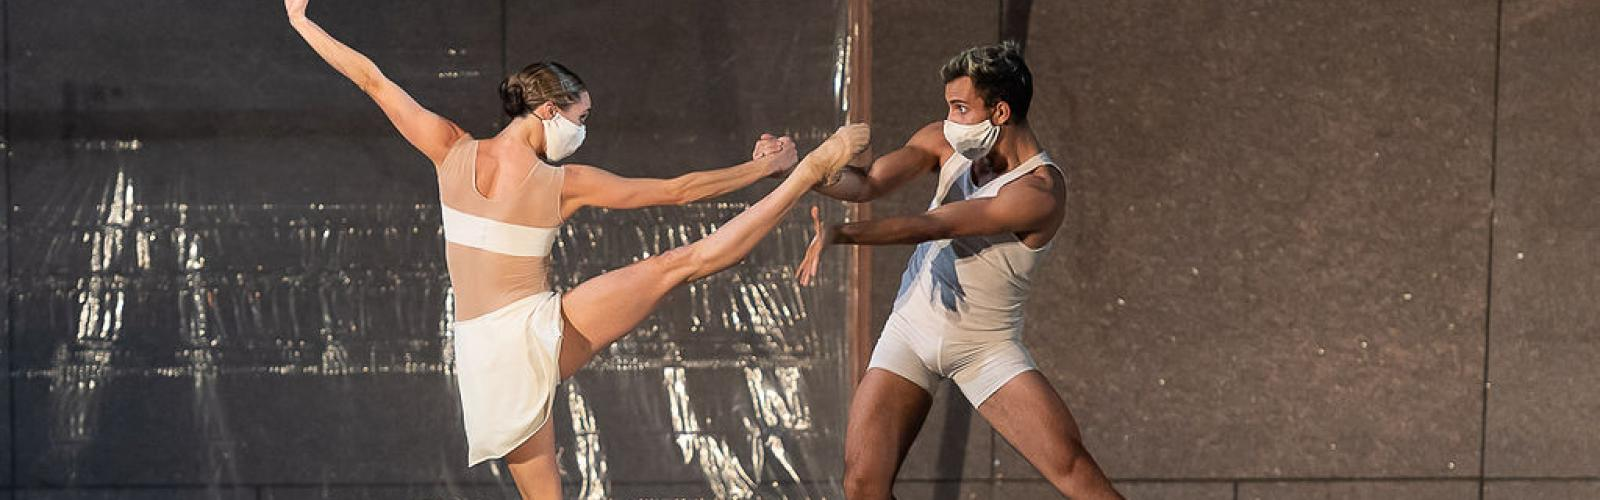 Woman and man dancing on stage wearing masks.